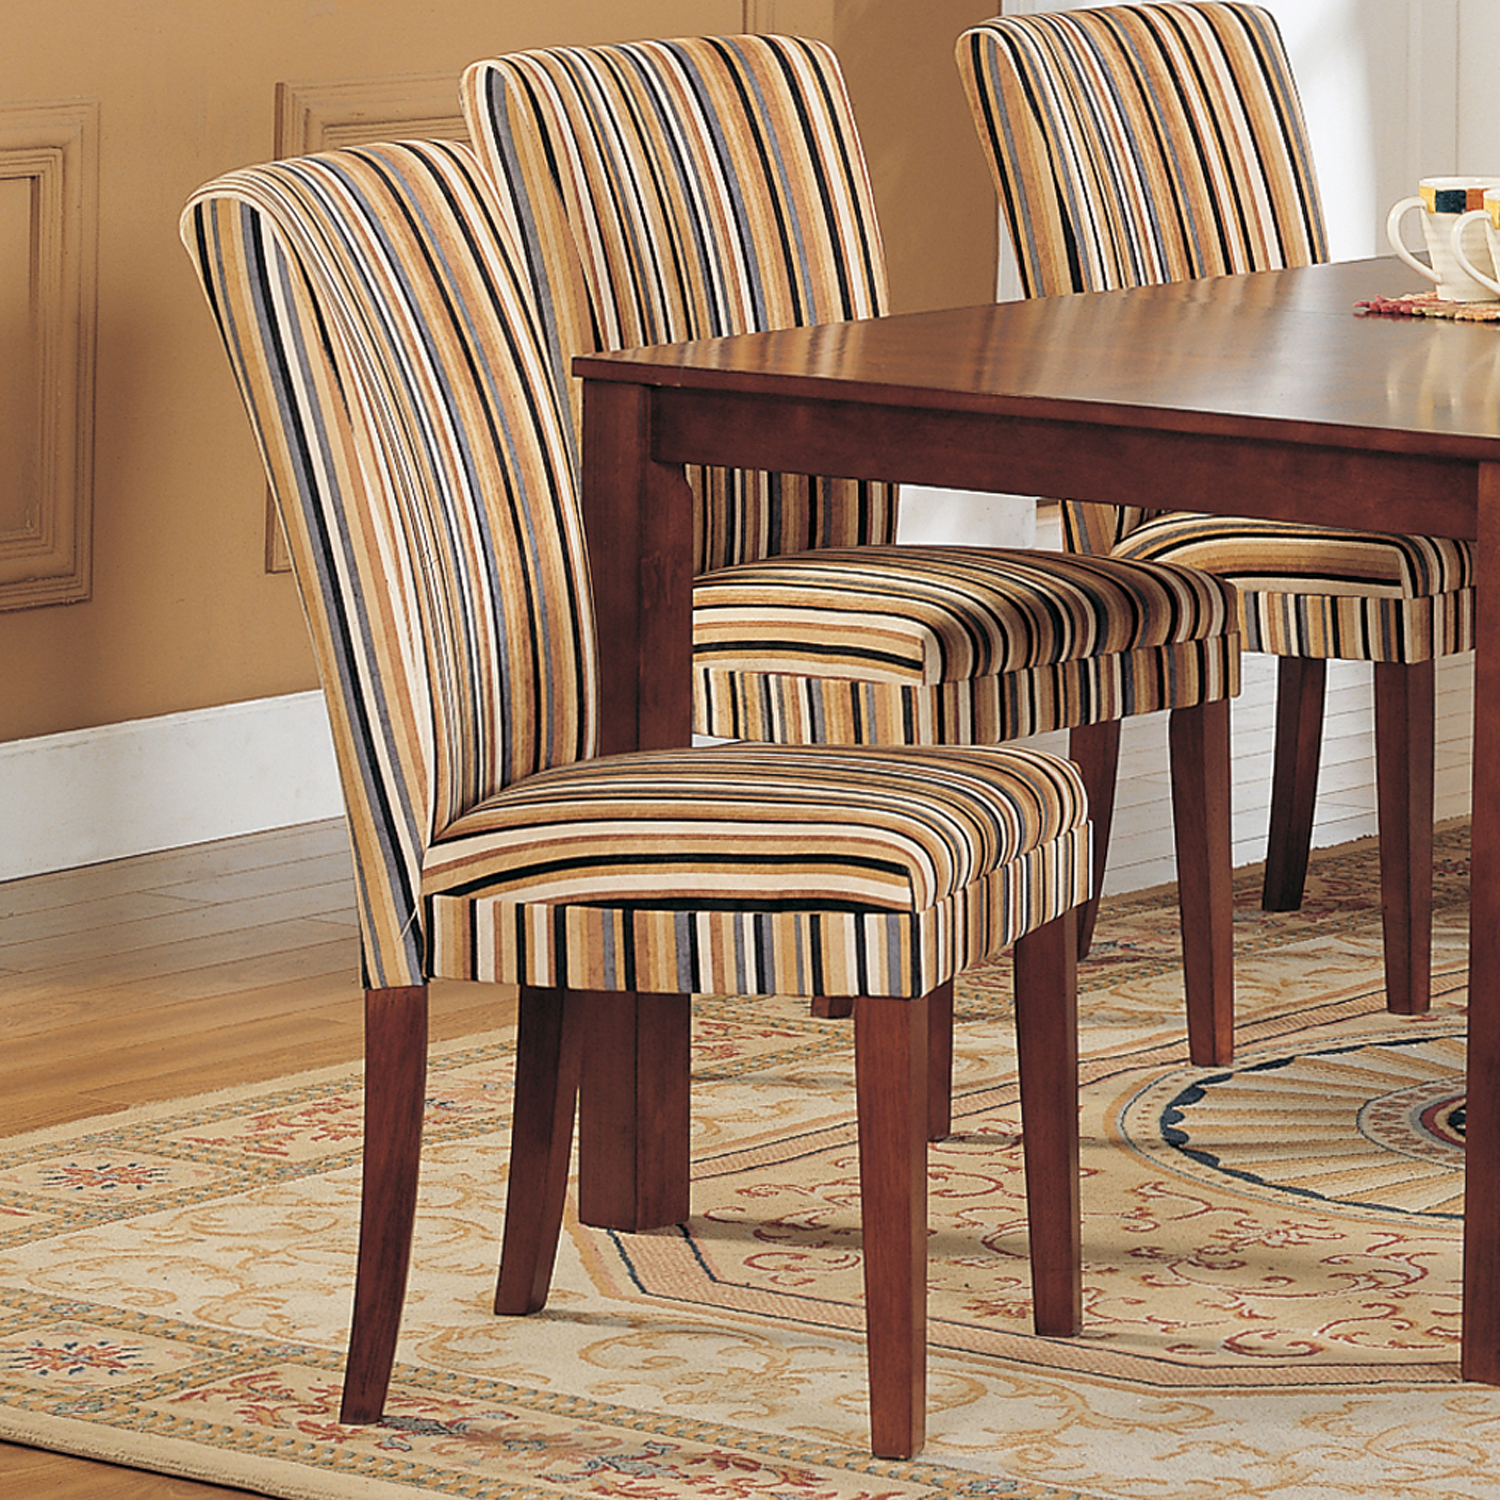 p P upholstered kitchen chairs Oxford Creek Striped Upholstered Dining Chair Set of 2 Multi Home Furniture Dining Kitchen Furniture Dining Chairs